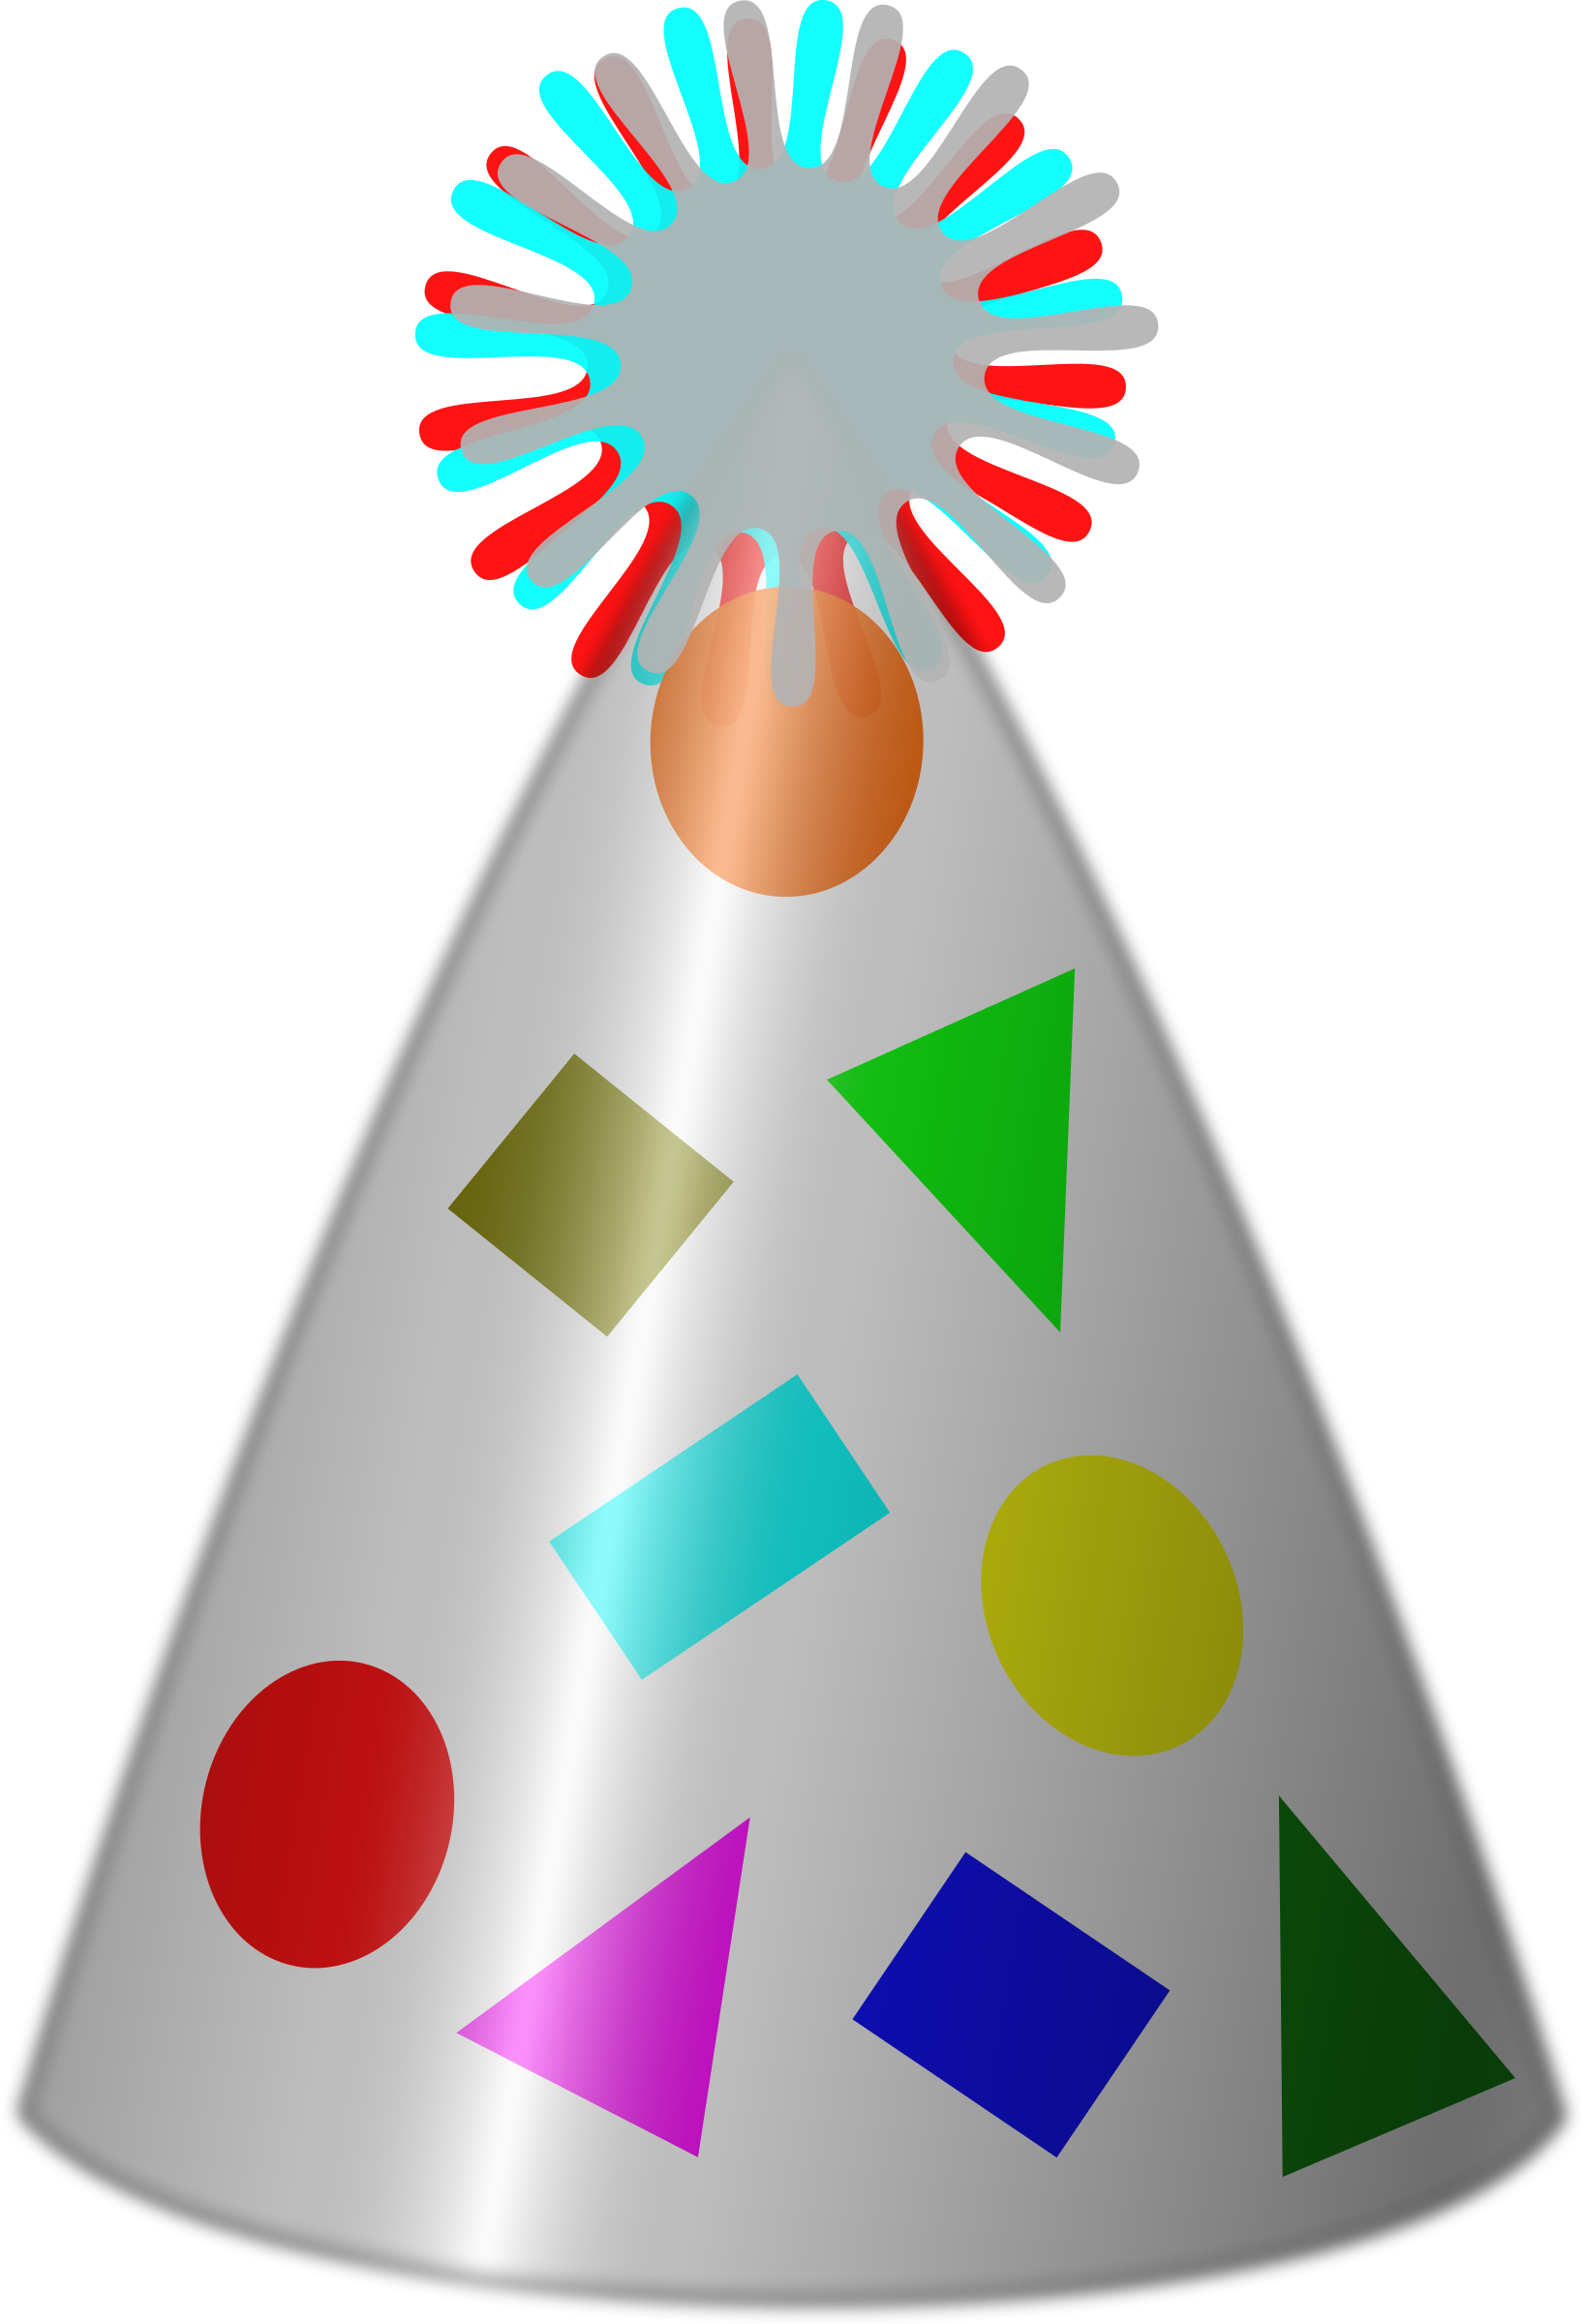 New years party hat png. Clipart at getdrawings com